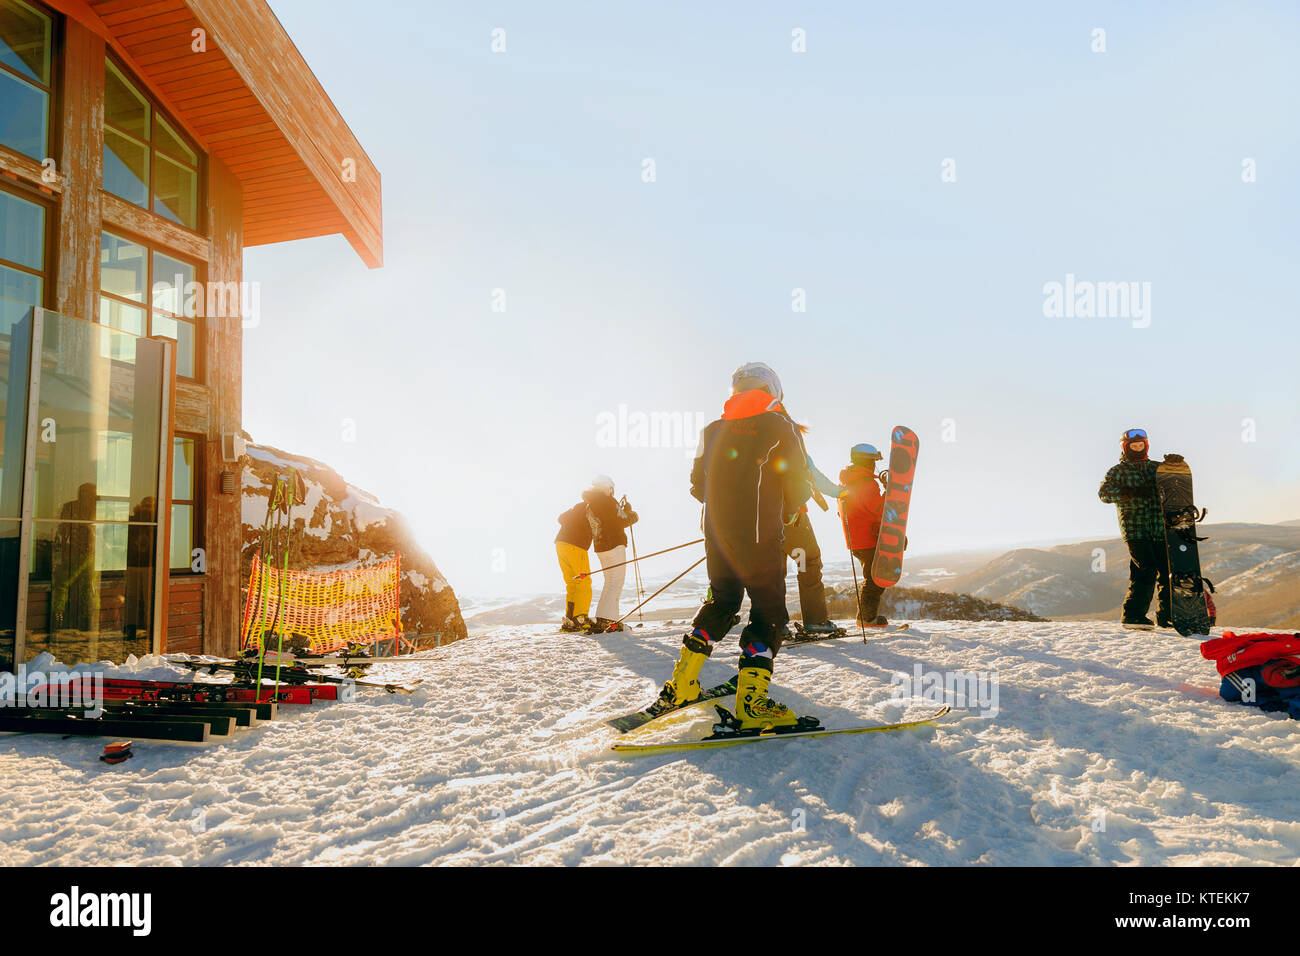 Magnitogorsk, Russia - December 18, 2017: group of snowboarders and skiers prepare to descend on mountain - Stock Image